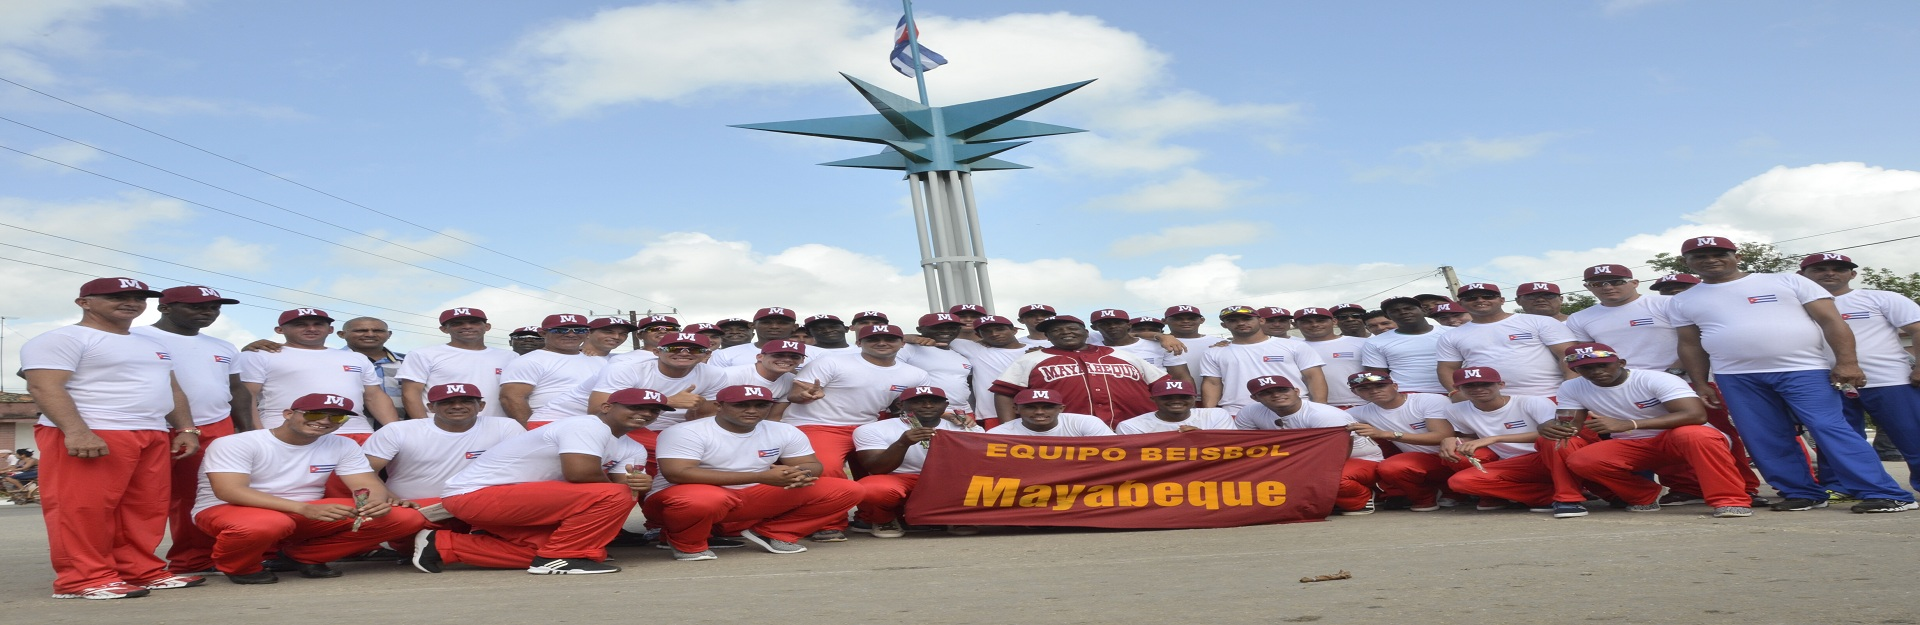 Mayabeque´s baseball team, Cuba Travel